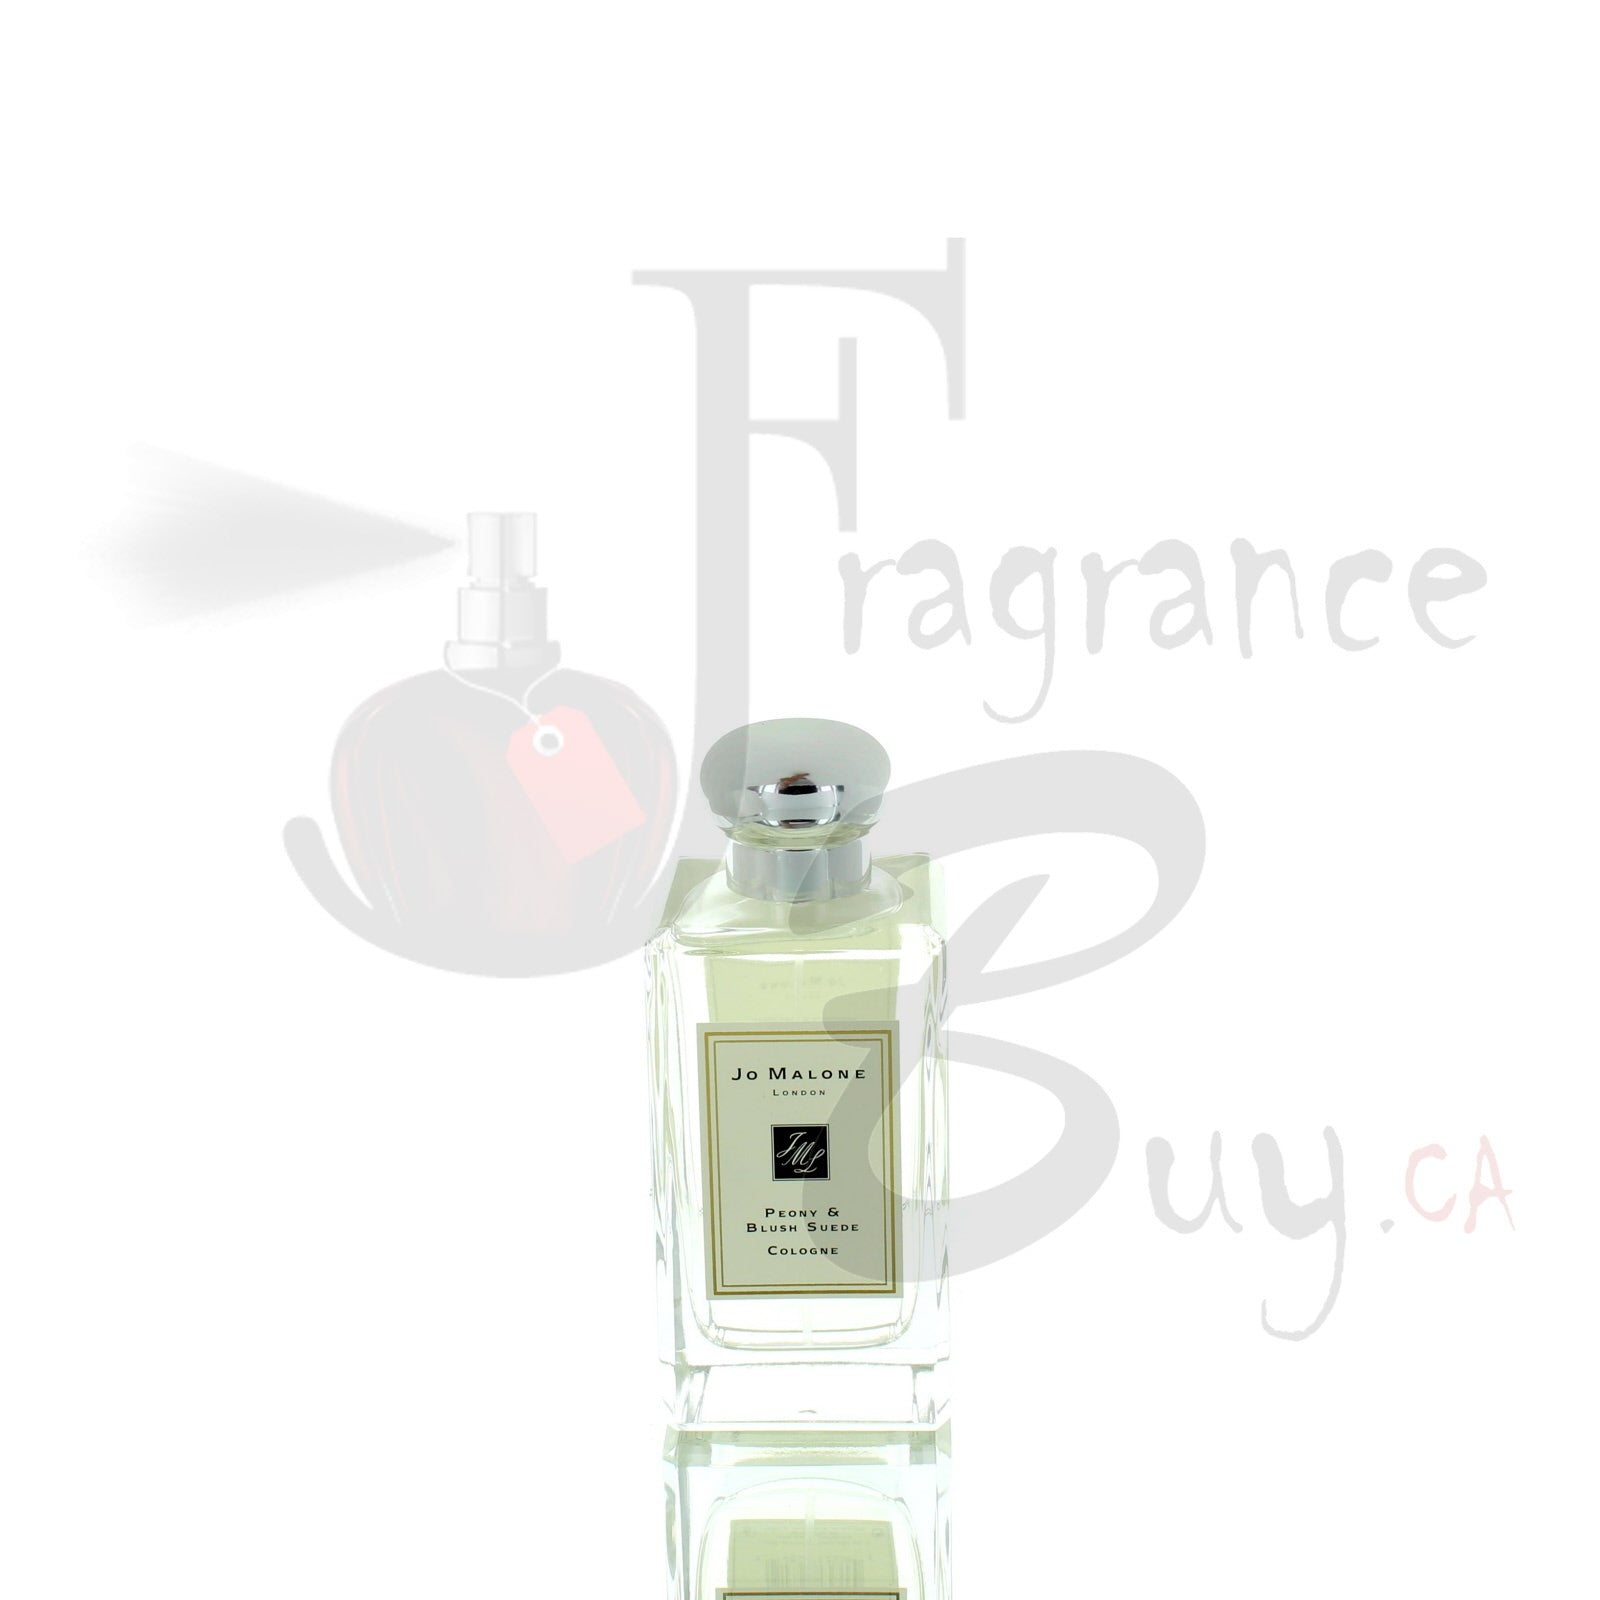 Jo Malone Peony And Blush Suede For Woman